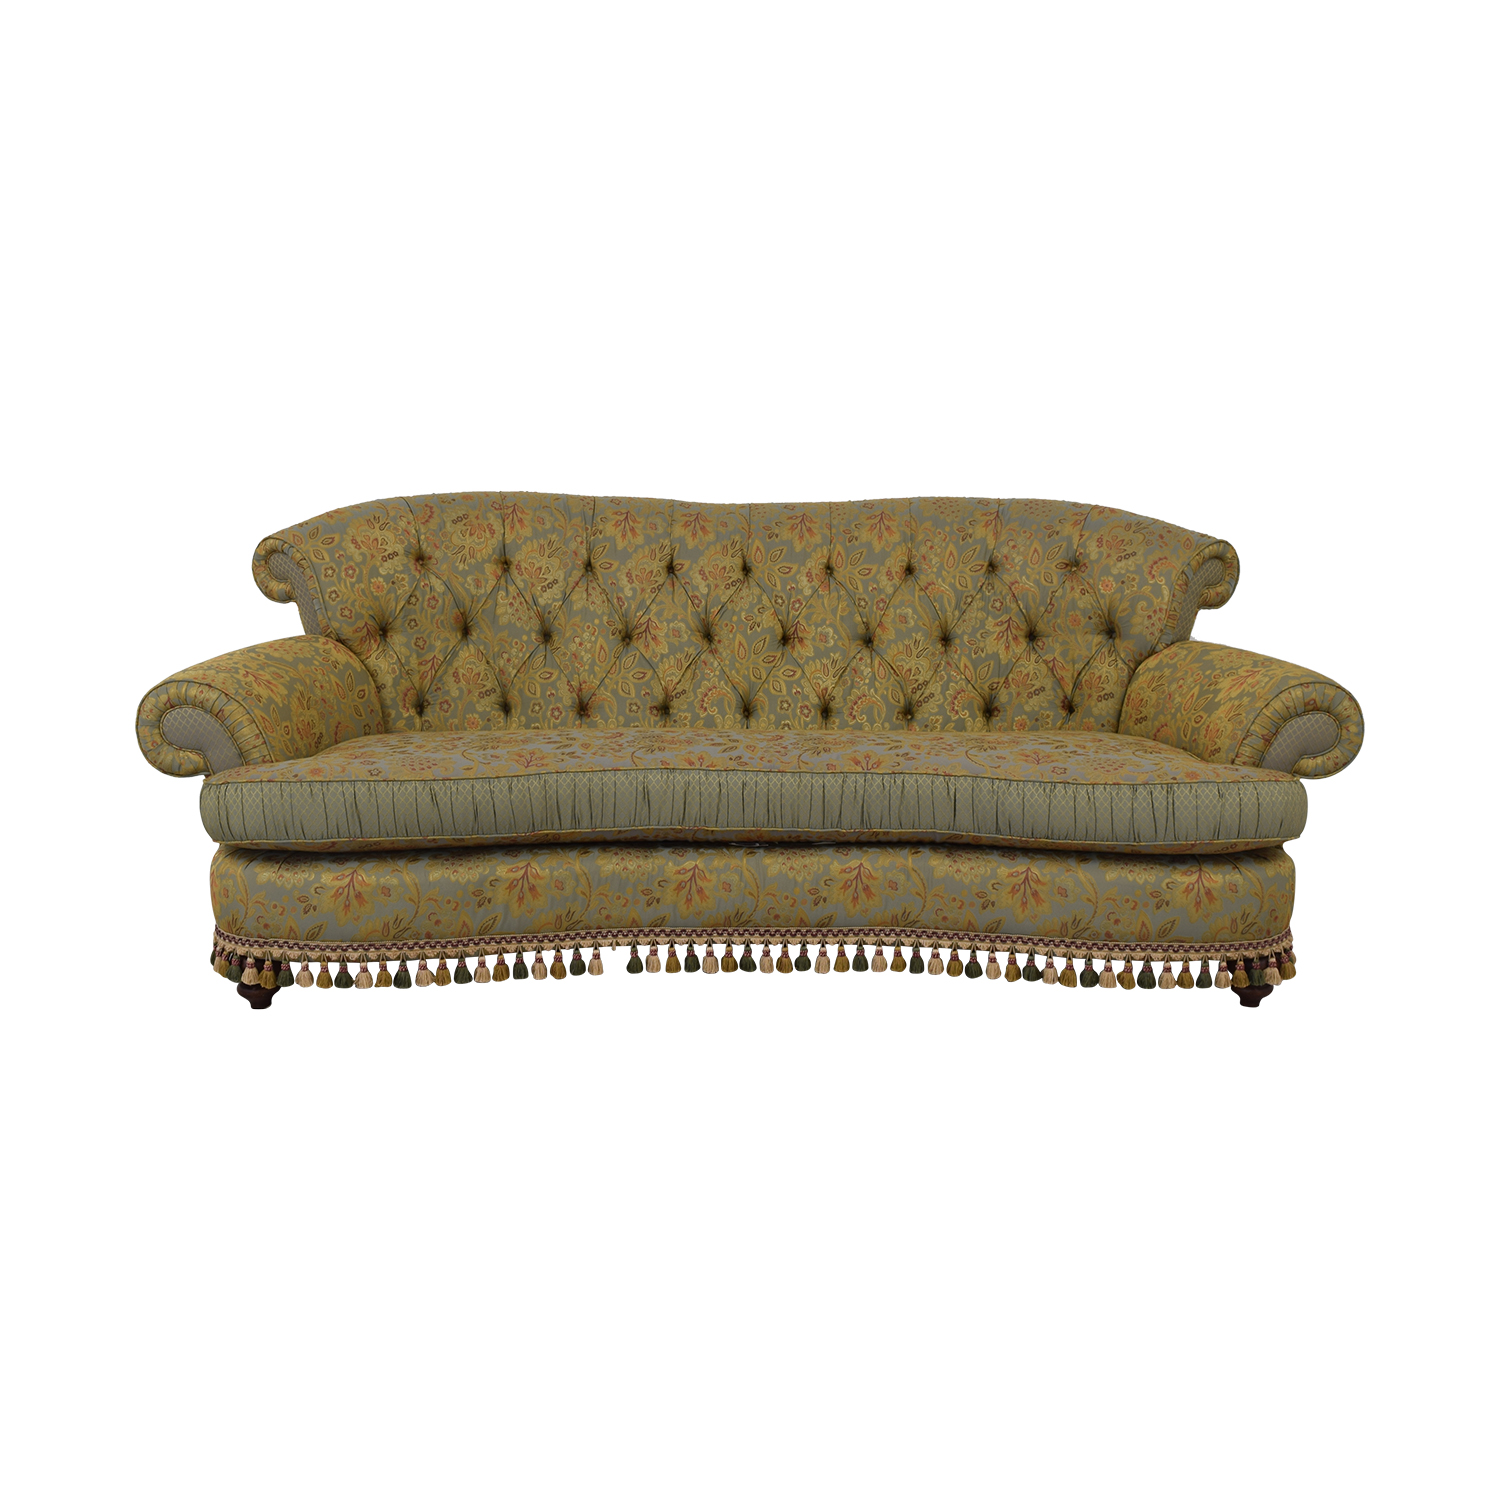 Safavieh Safavieh Patterned Sofa nyc